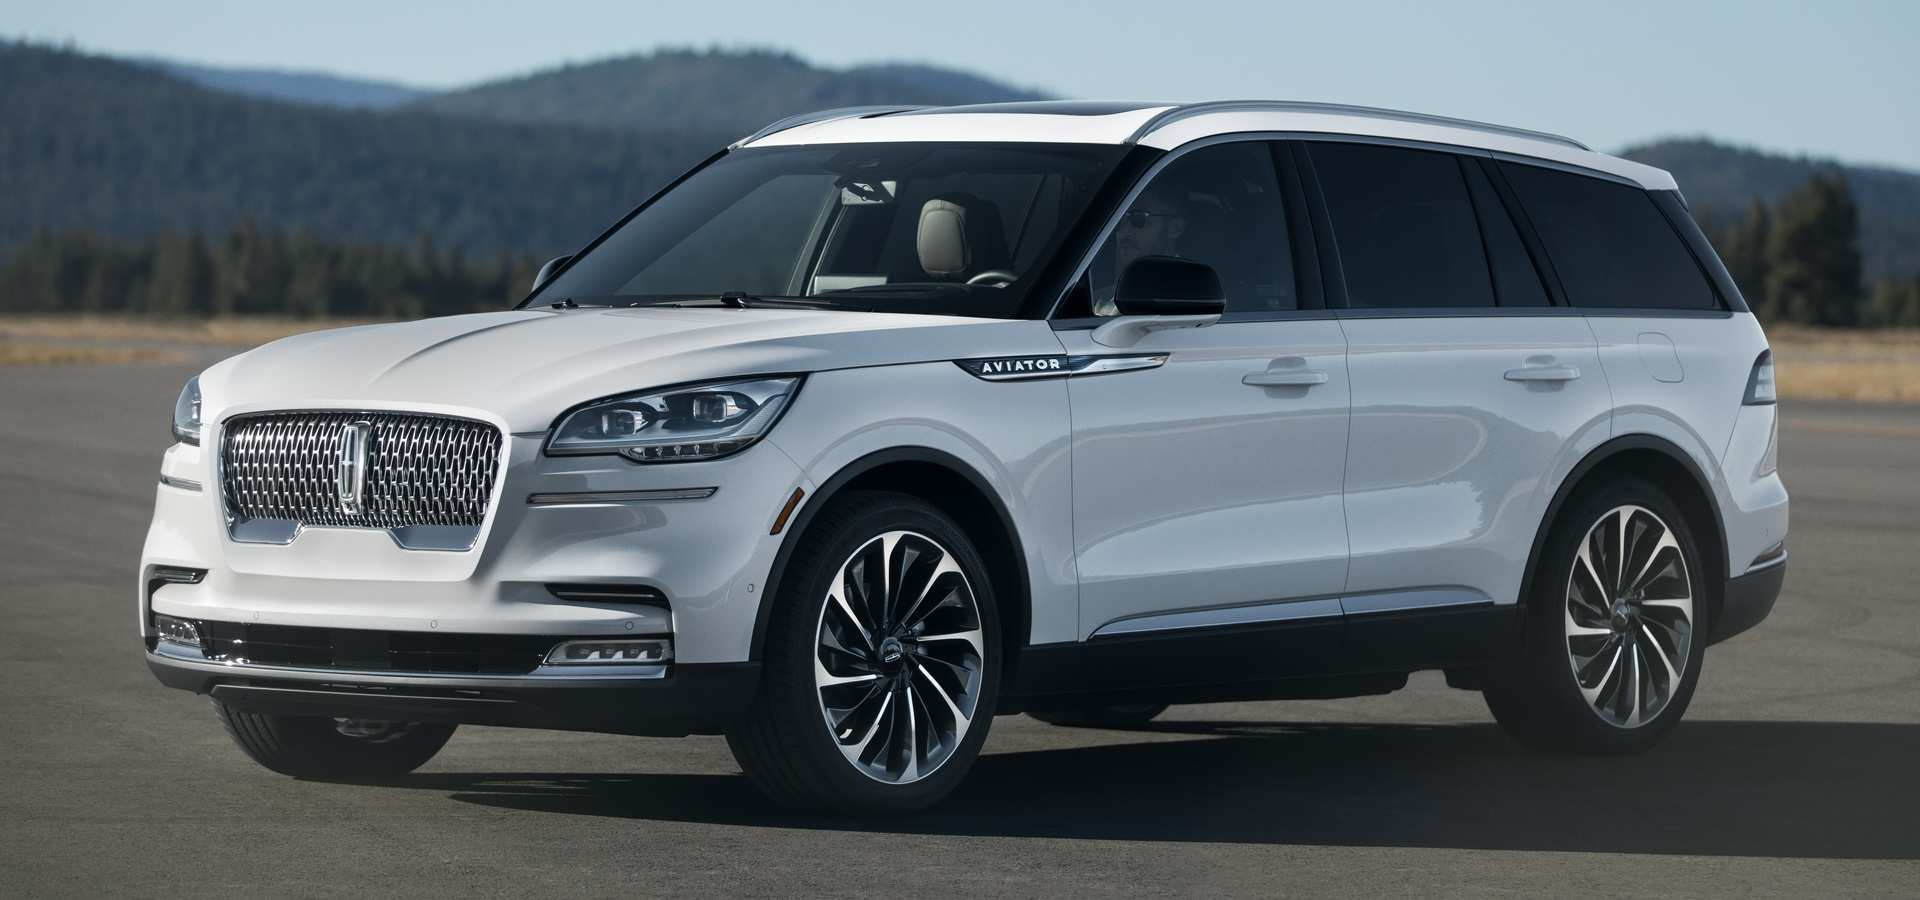 12 Best Review 2020 Lincoln Aviator Vs Cadillac Xt6 Pictures with 2020 Lincoln Aviator Vs Cadillac Xt6